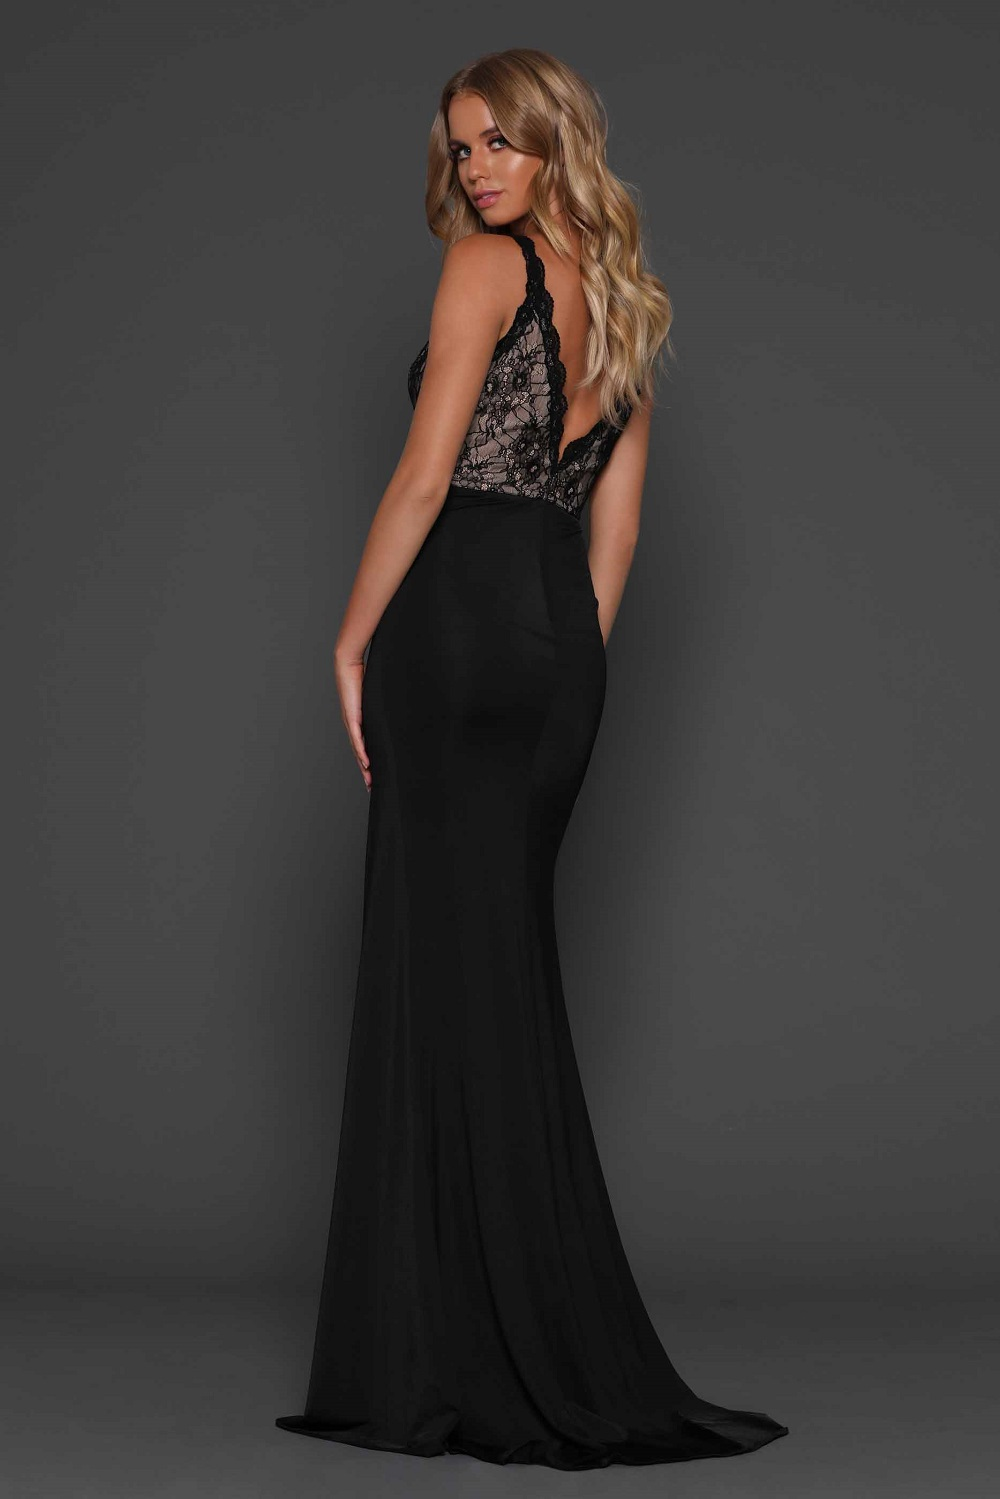 Christina Black Evening dress back